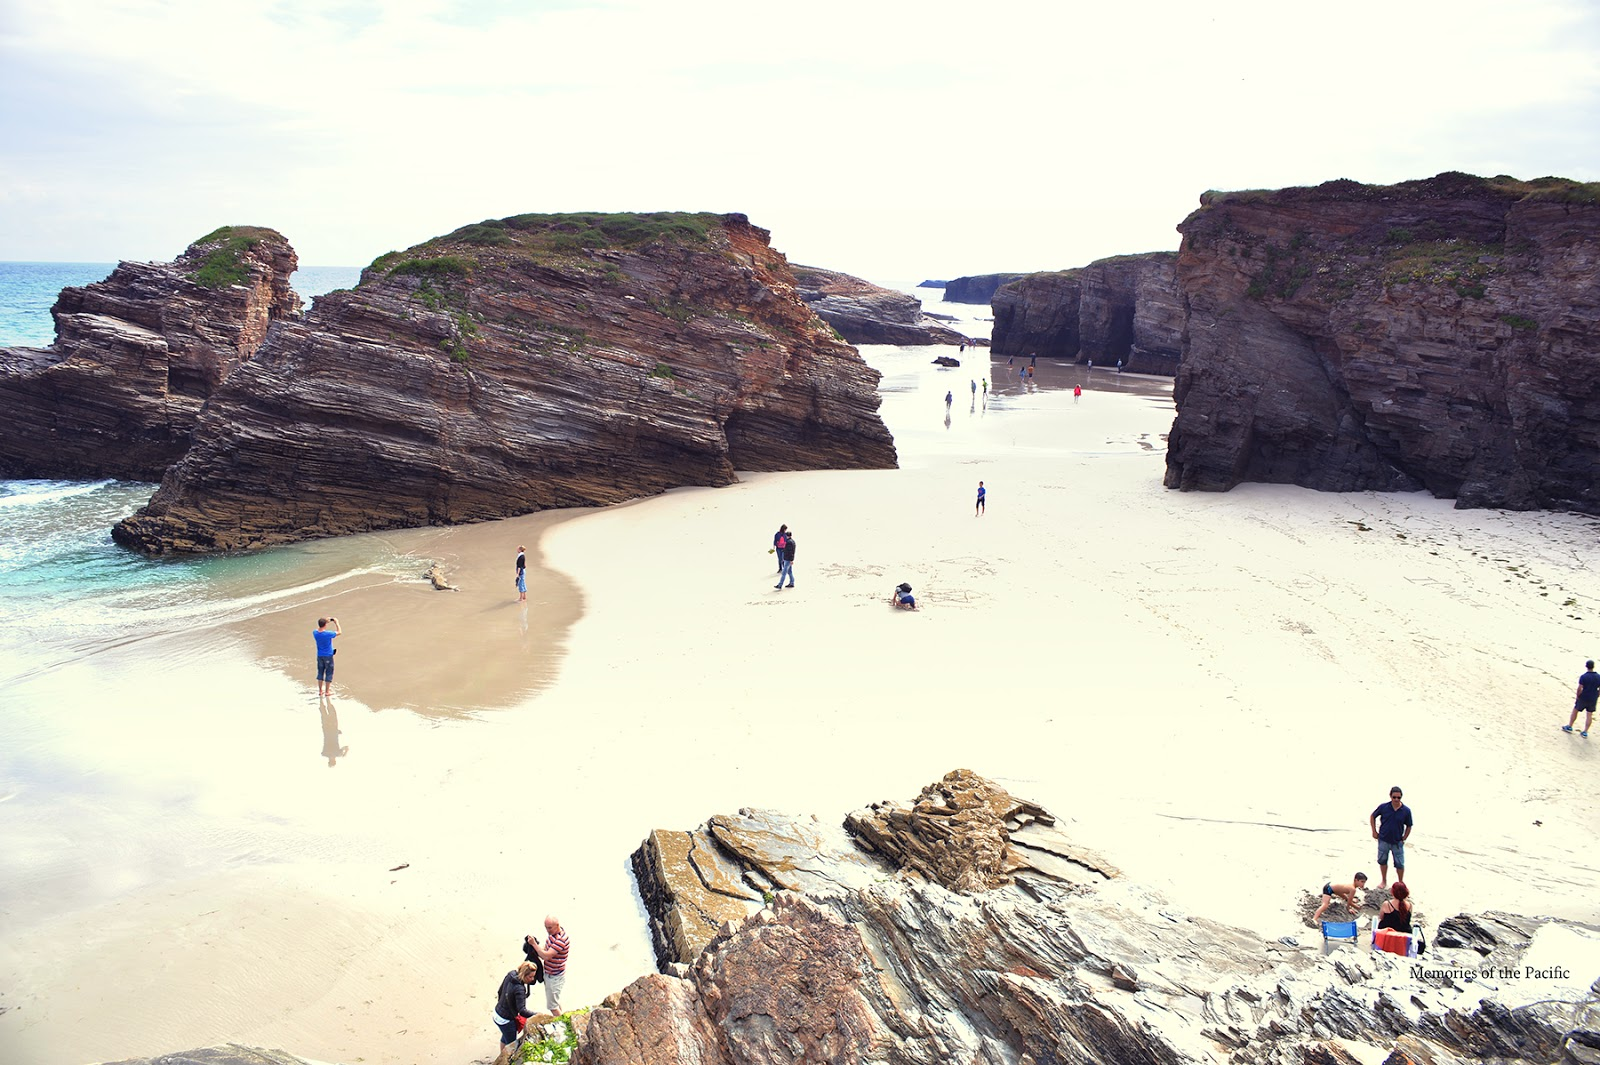 galicia españa spain playa de las catedrales beach of the cathedrals